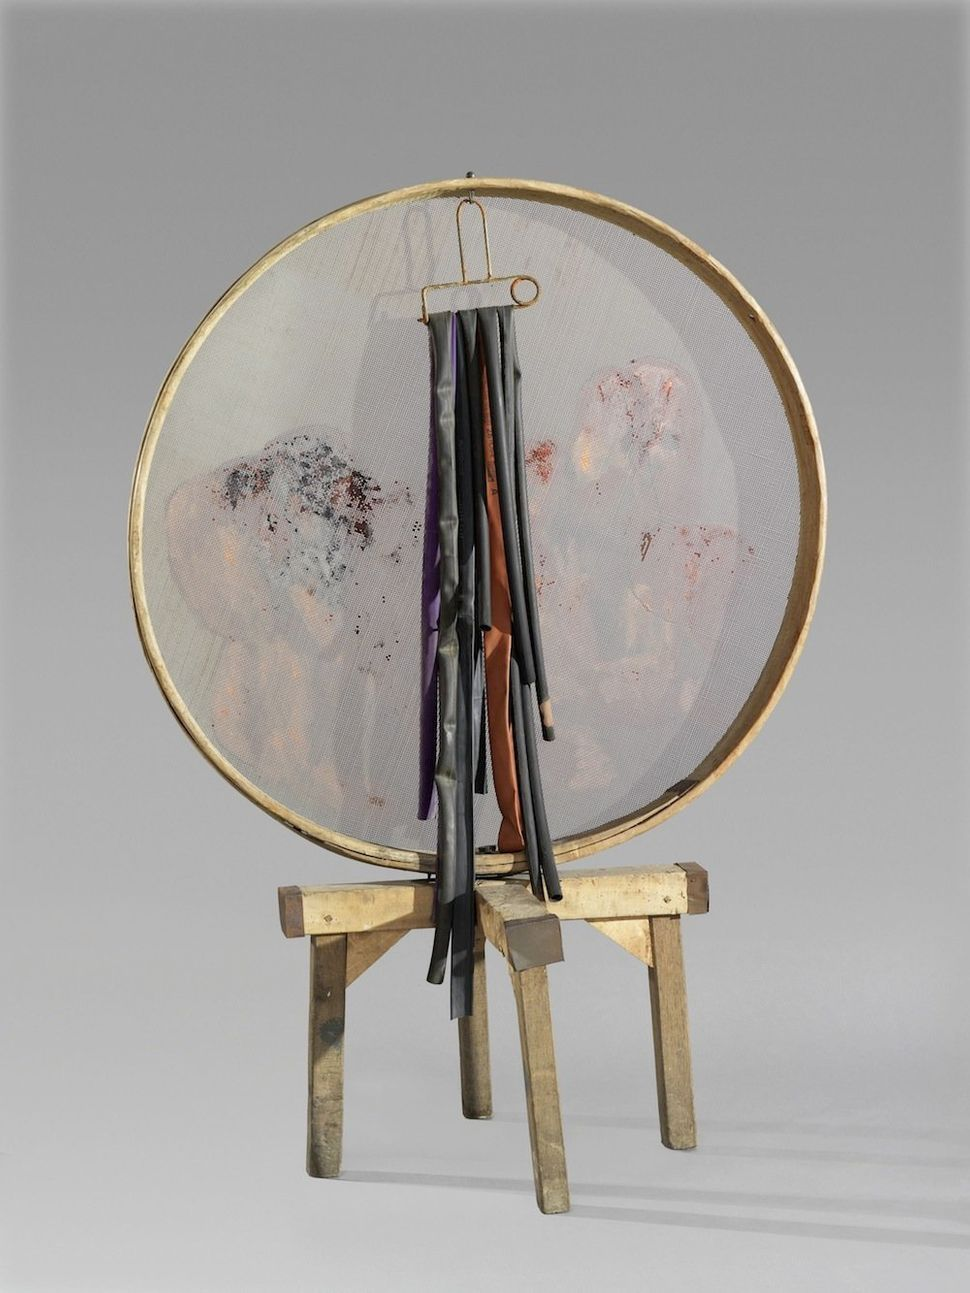 Sortilegi 1984 Composition with found objects and sieve 159 x 112,5 x 68,7 cm Hauser & With Collection, Switzerland Photo: St